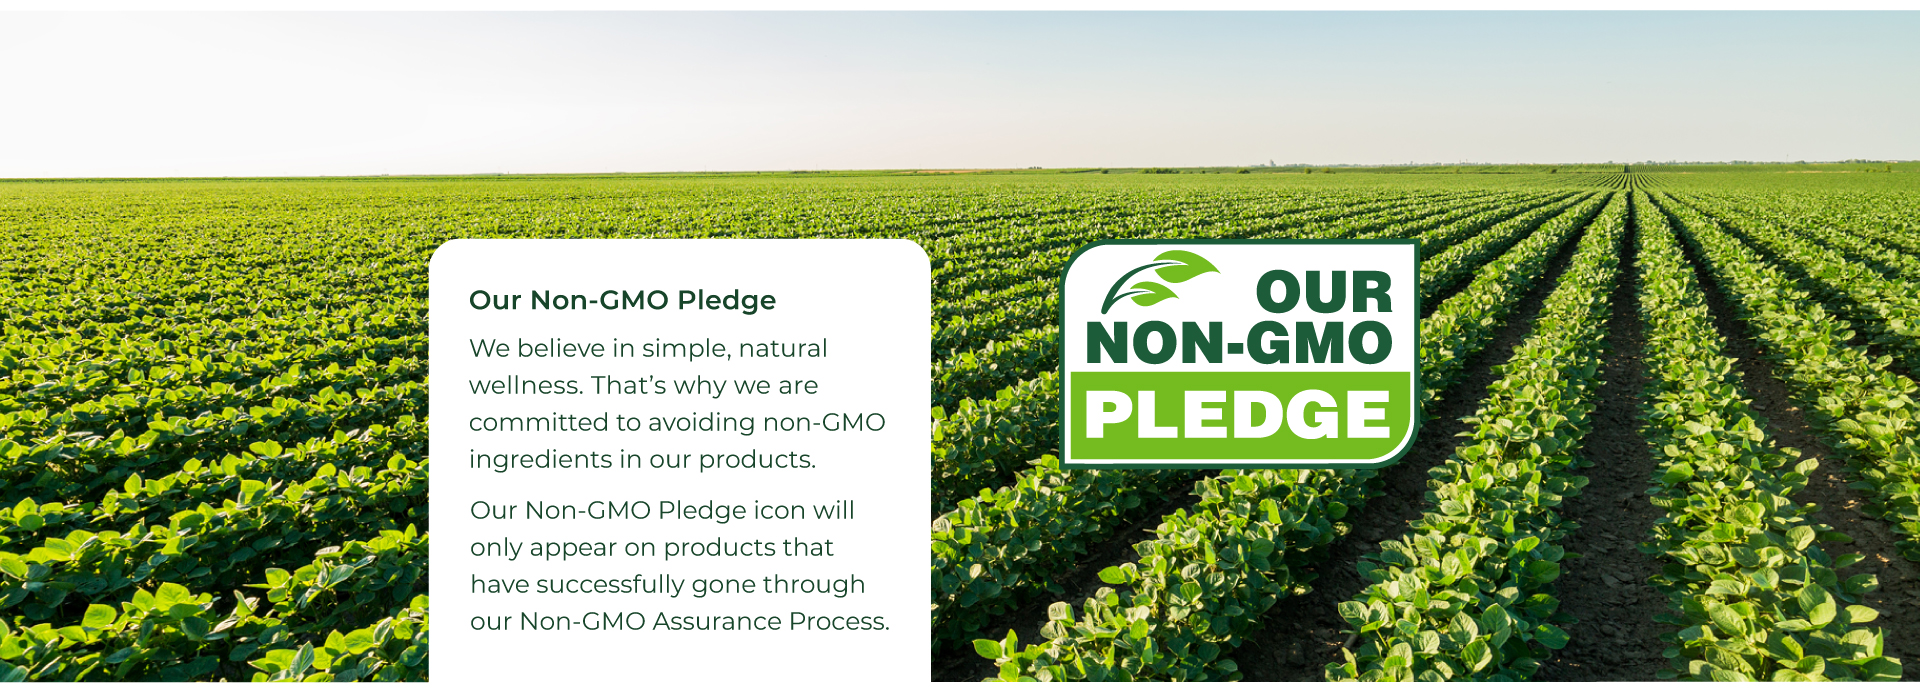 Our Non-GMO Pledge. We believe in simple, natural wellness.That's why we are committed to avoiding non-GMO ingredients in our products. Our Non-GMO pledge icon will only appear on products that have successfully gone through our Non-GMO assurance process.